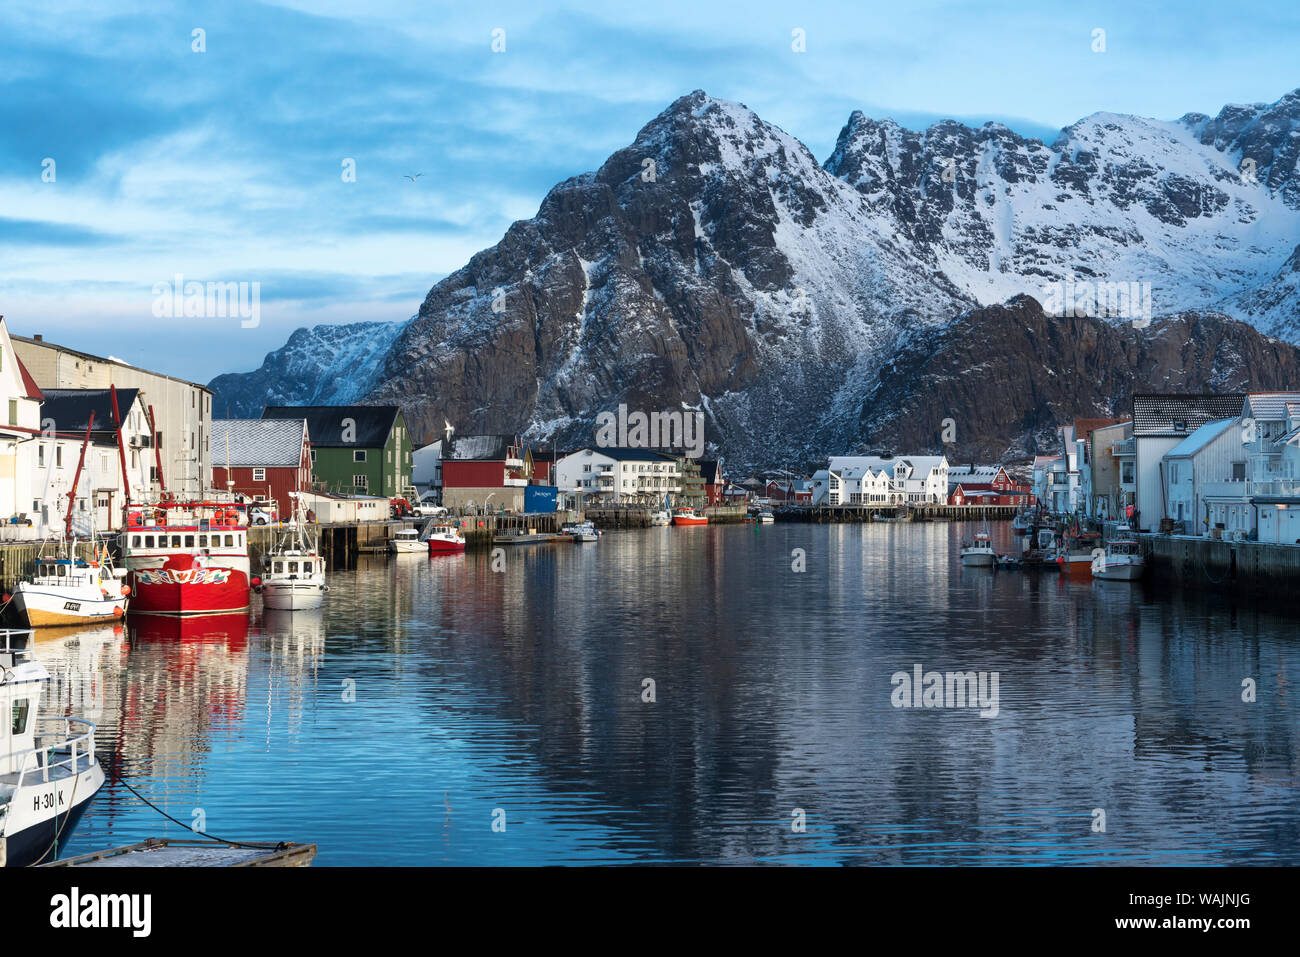 Norway, Lofoten Islands, Vestvag Island. A fishing village is set among dramatic mountains. Stock Photo